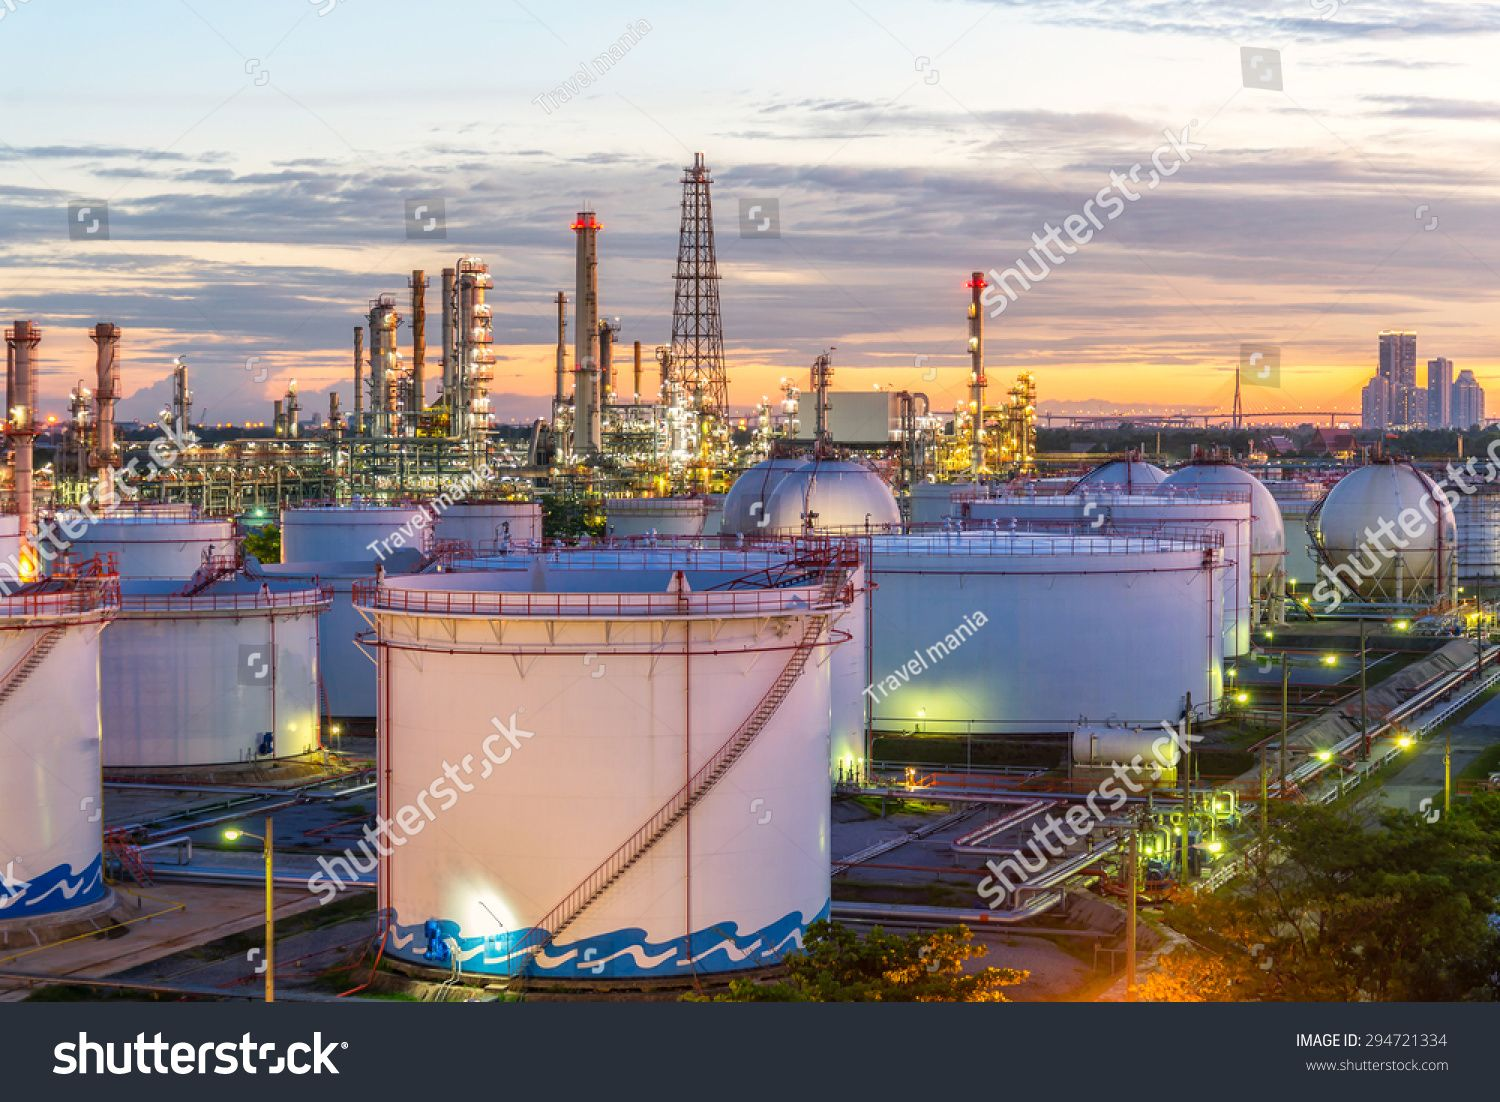 Oil and gas industry refinery at sunset factory